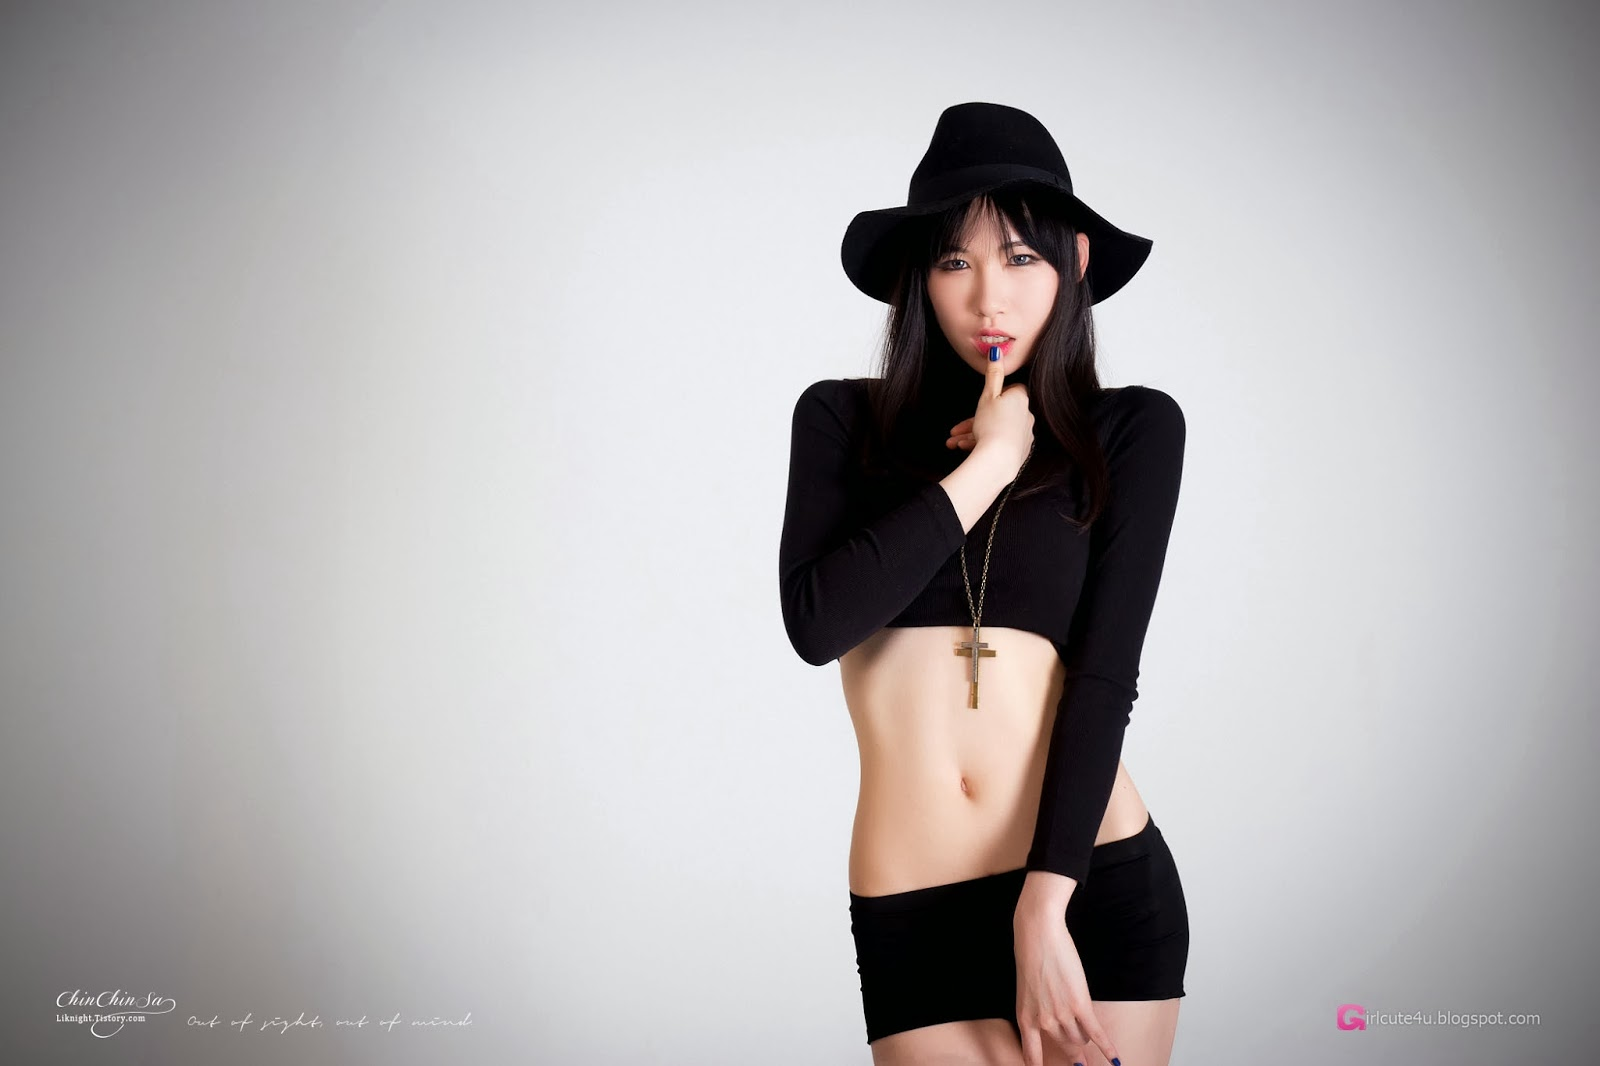 1 Kim Mi Jin - New Model - very cute asian girl-girlcute4u.blogspot.com